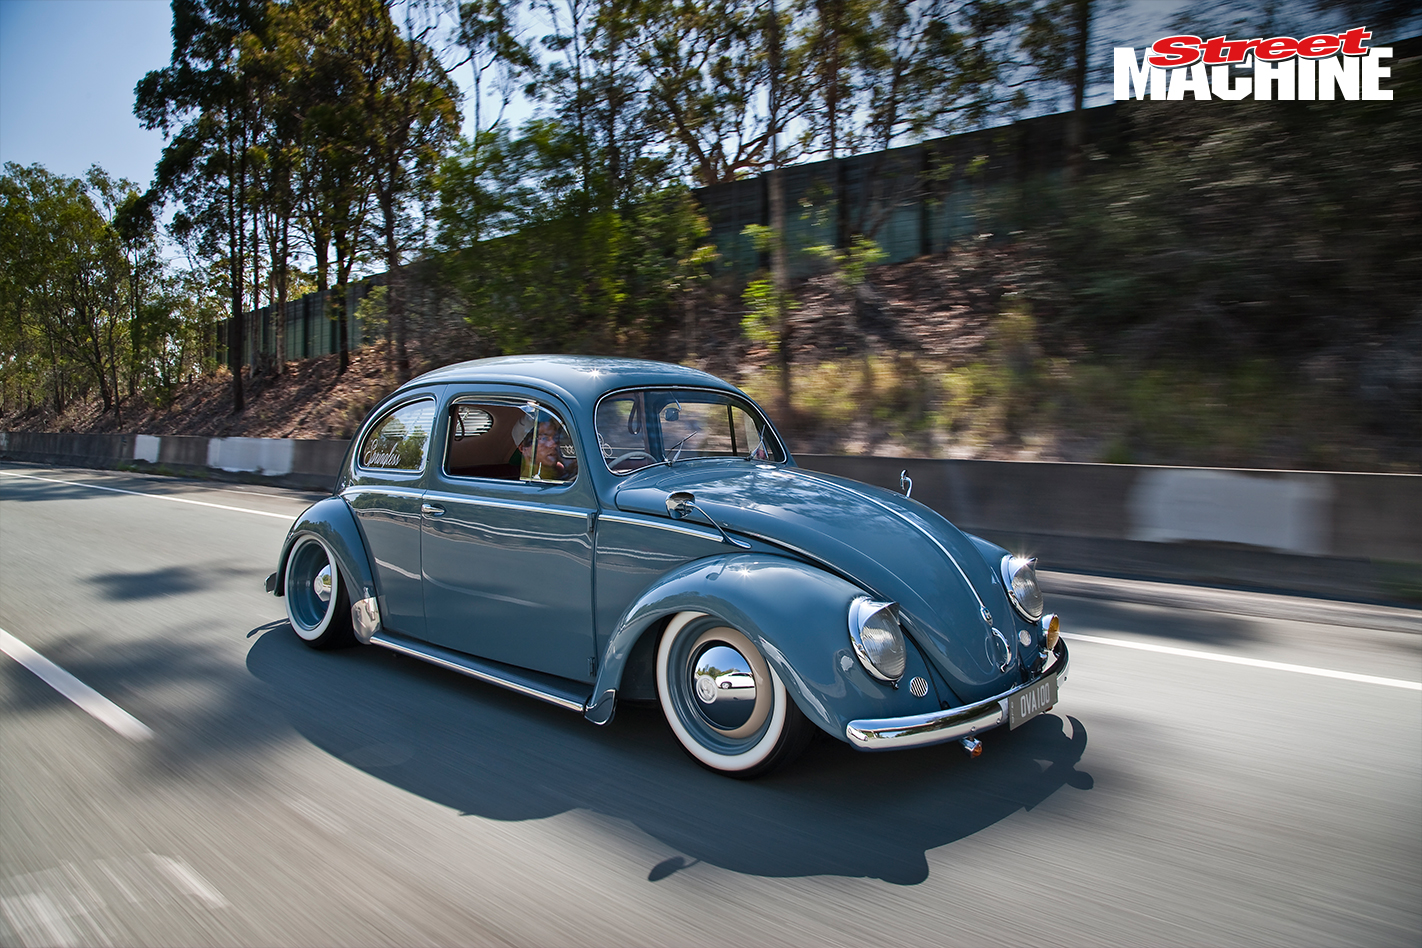 Two of the coolest Volkswagen Beetles in Australia